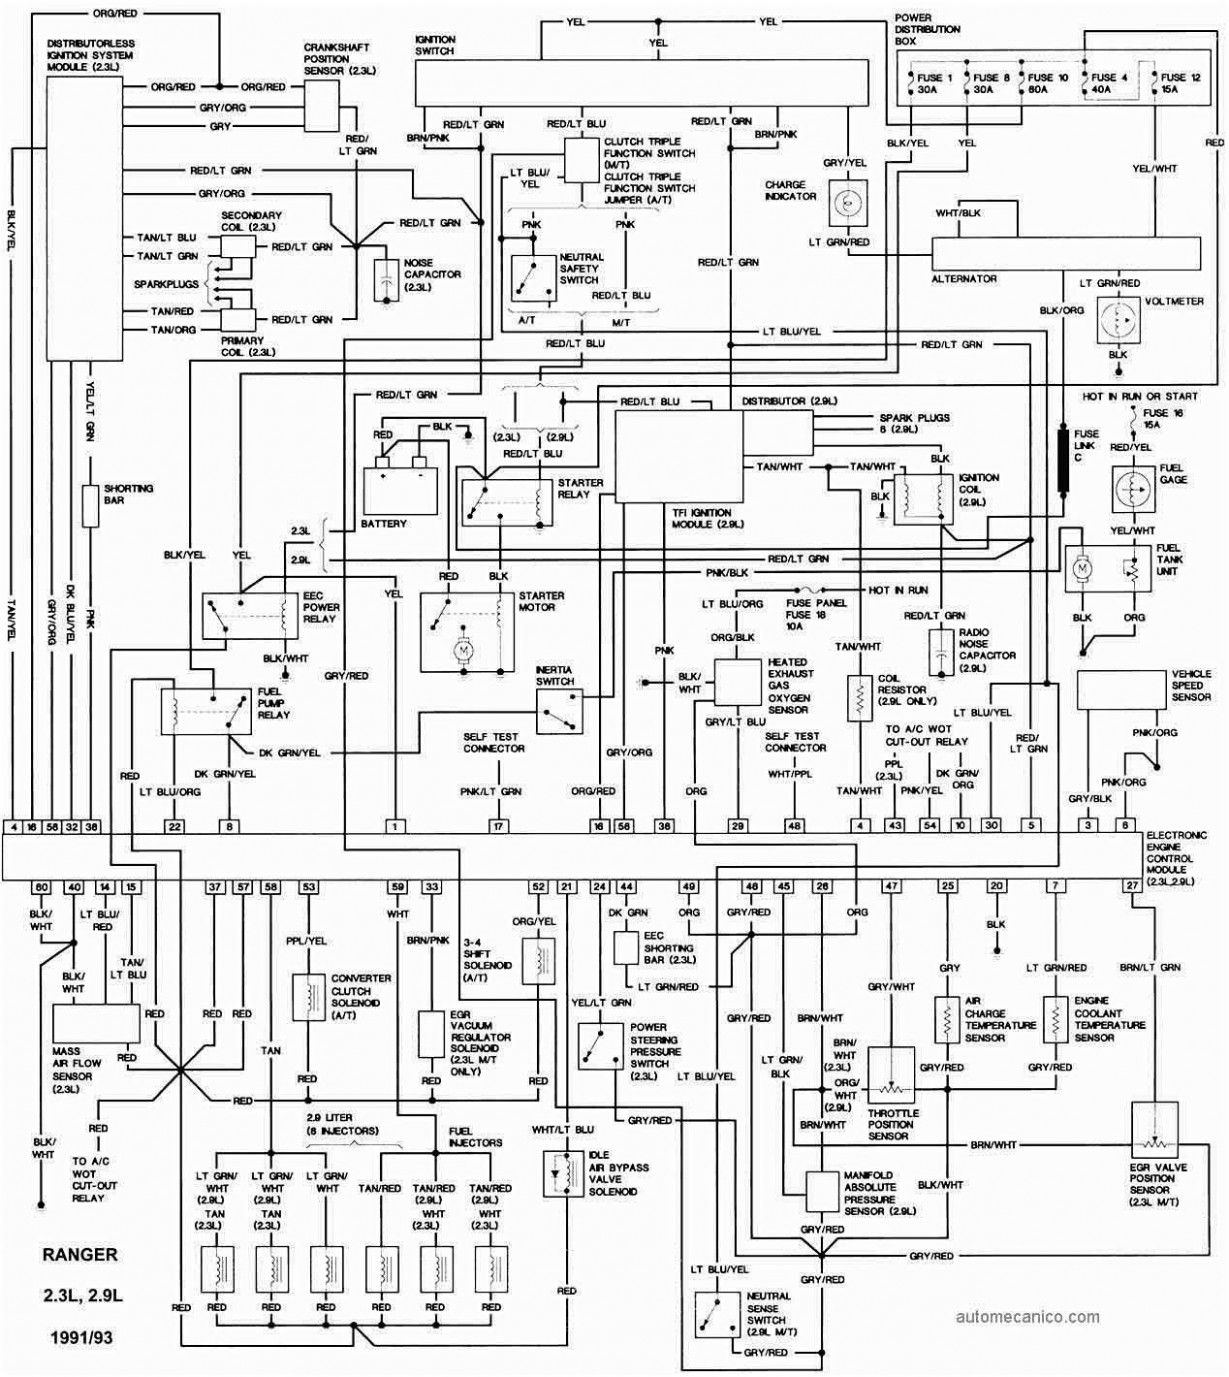 1998 Ford F250 Starter Solenoid Wiring Diagram from i.pinimg.com